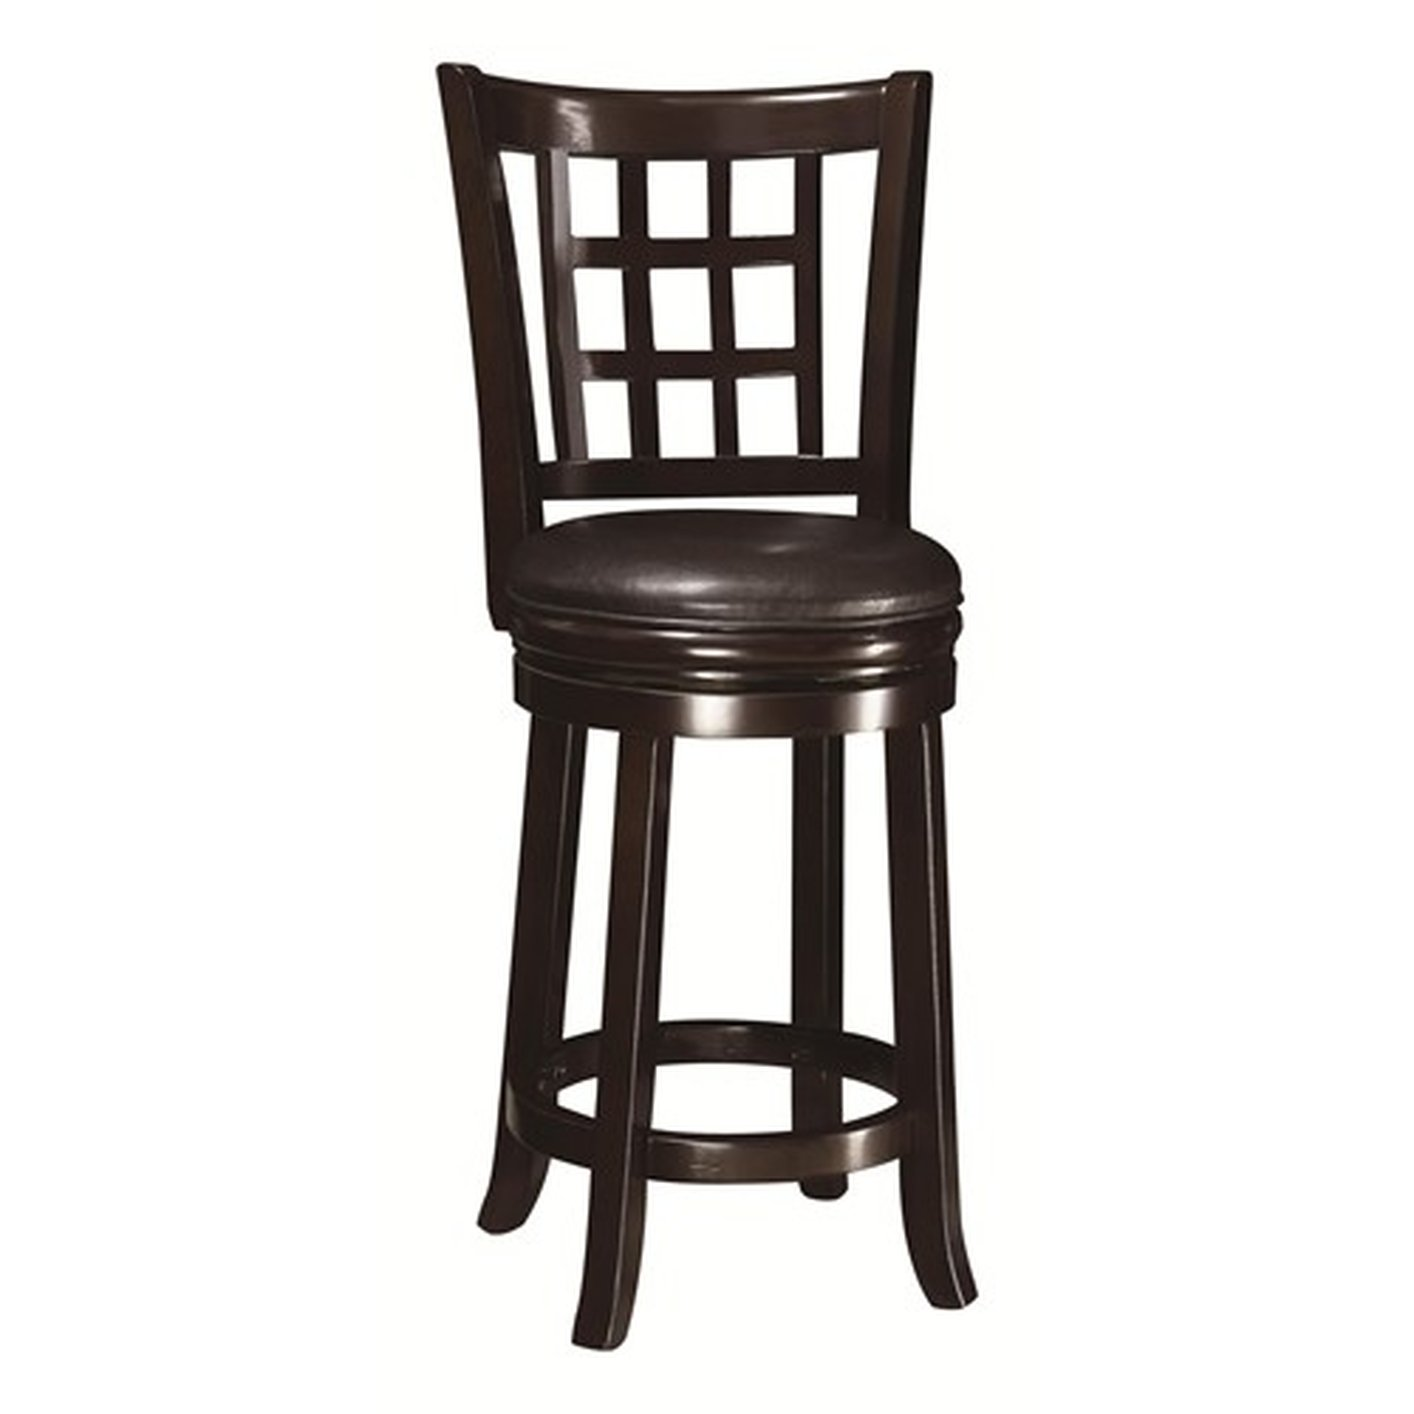 Brown Leather Bar Stool Napa Valley 25 Quot Swivel  : brown leather bar stool 200 from chipoosh.com size 1414 x 1414 jpeg 86kB